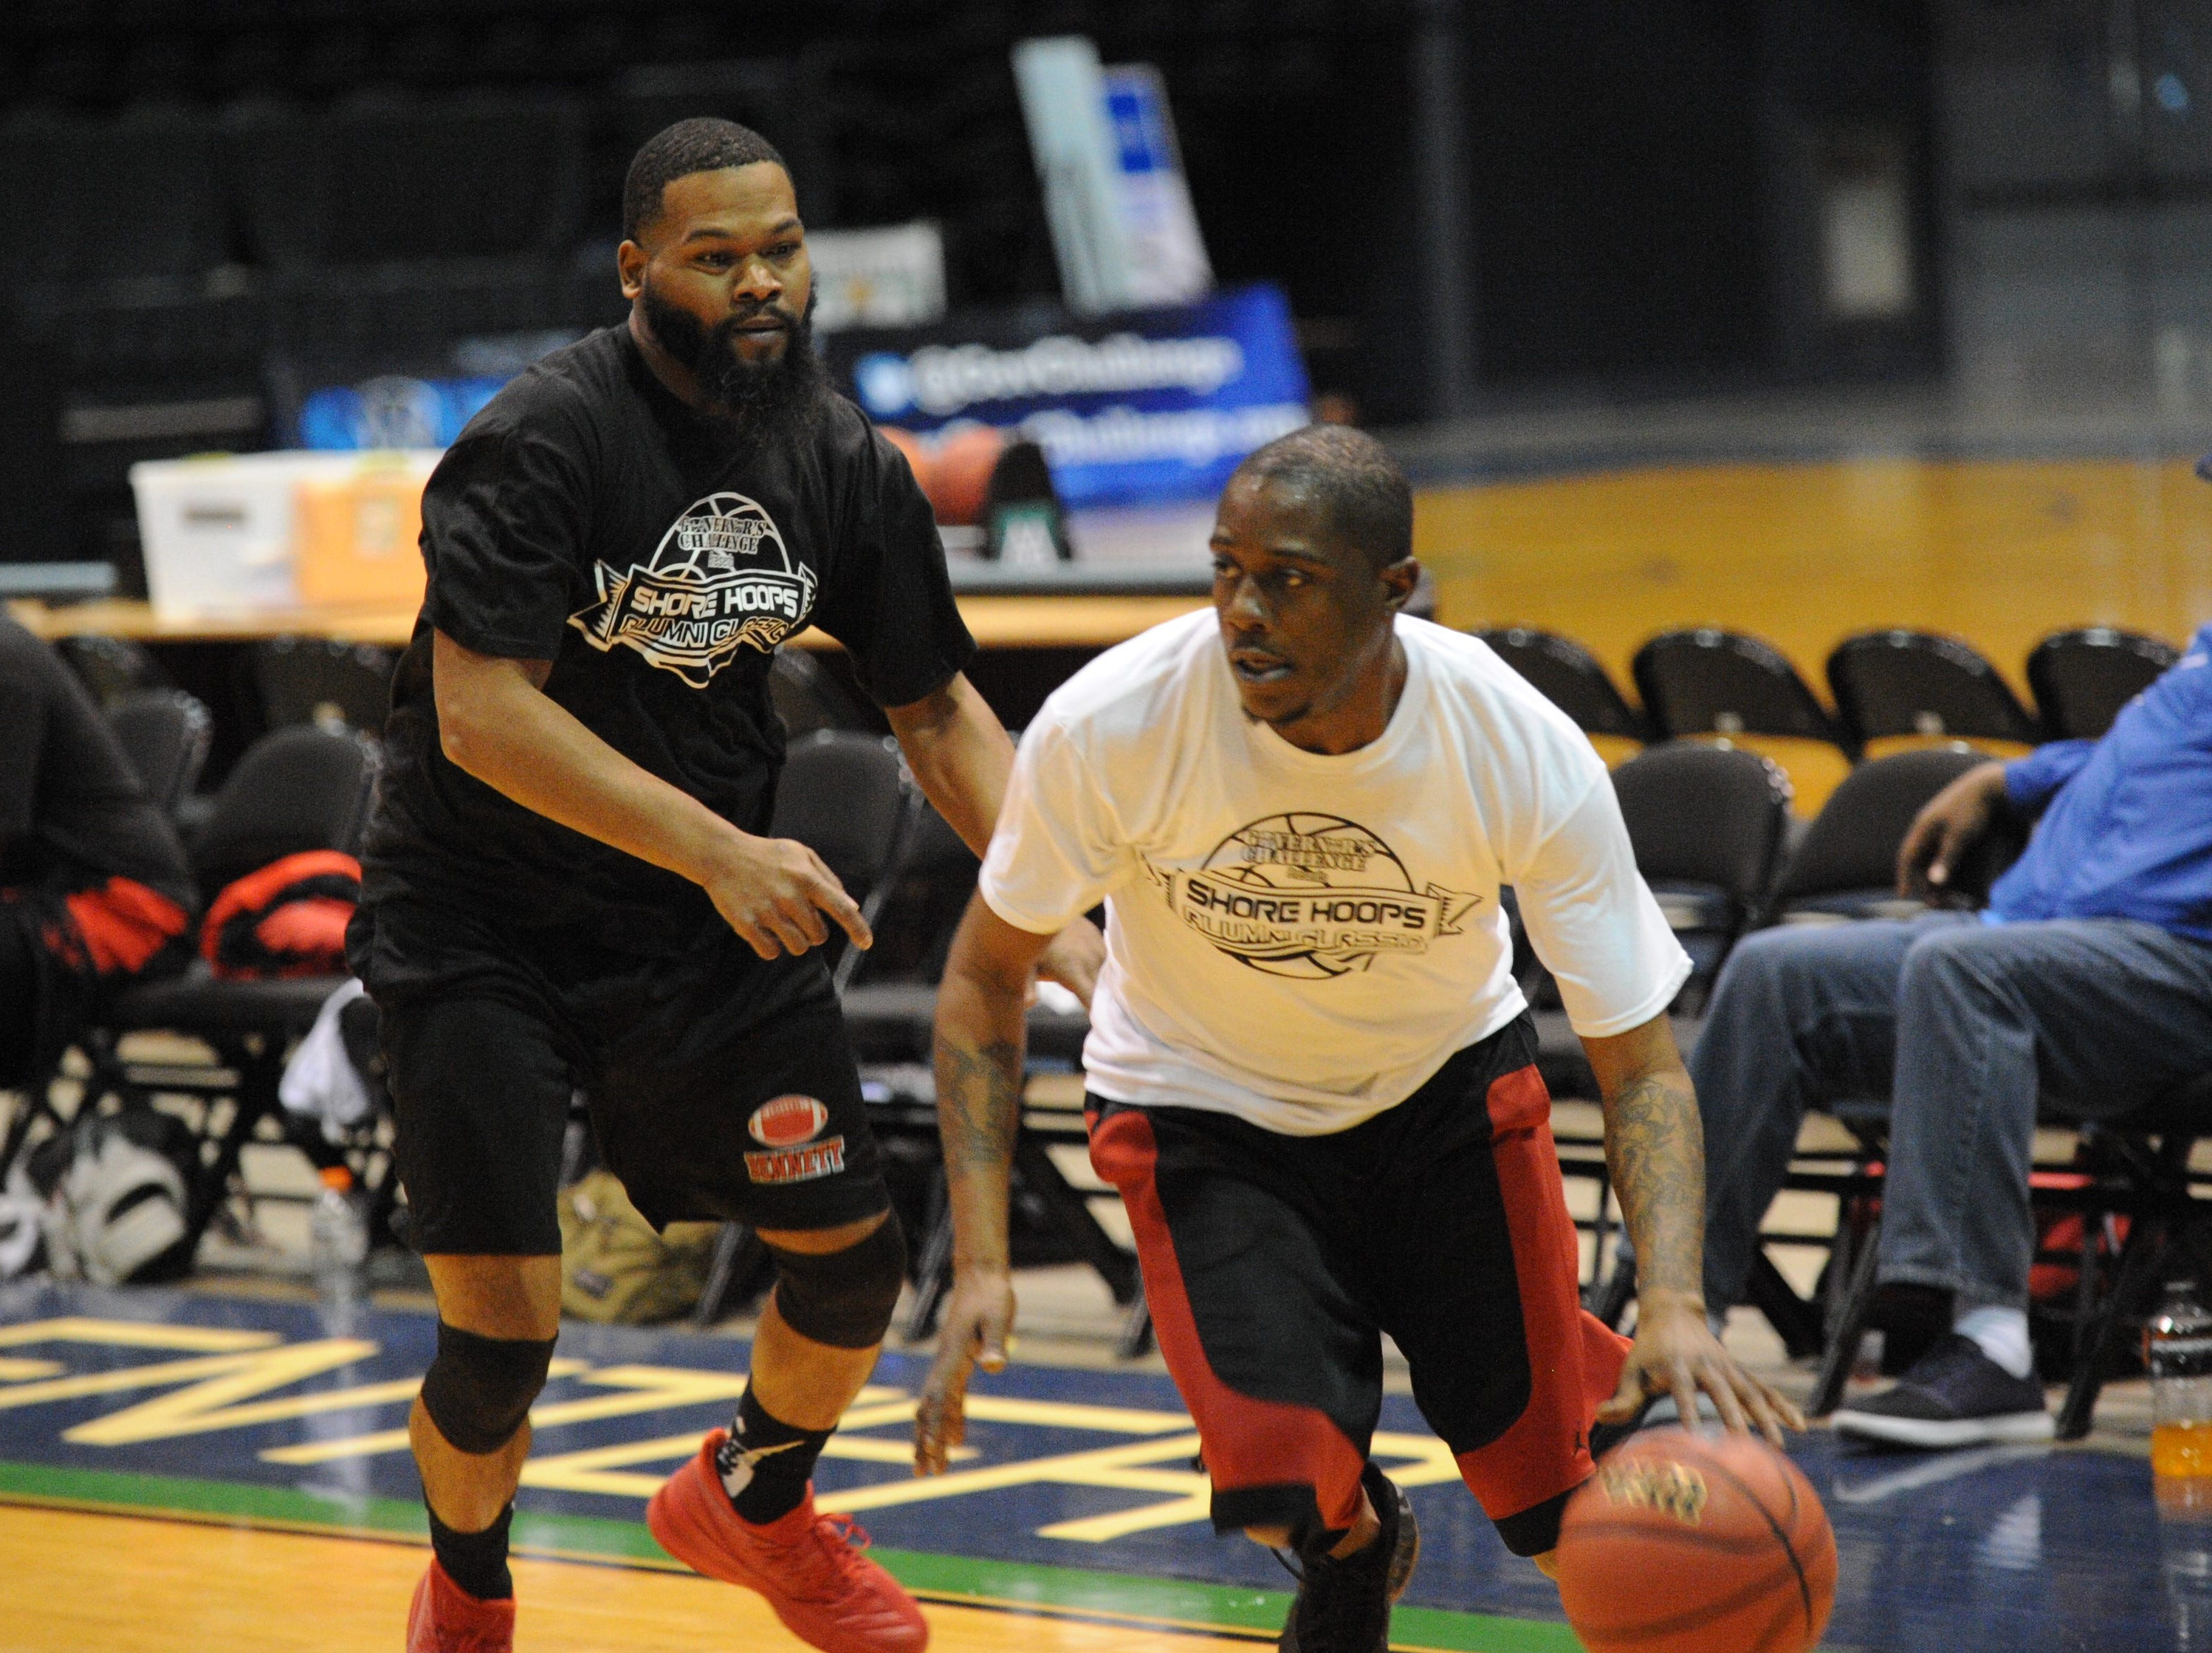 A member of the 2003 James M. Bennett basketball team takes the ball up court at the first ever Shore Hoops Alumni Classic on Saturday, Dec. 22, 2018.